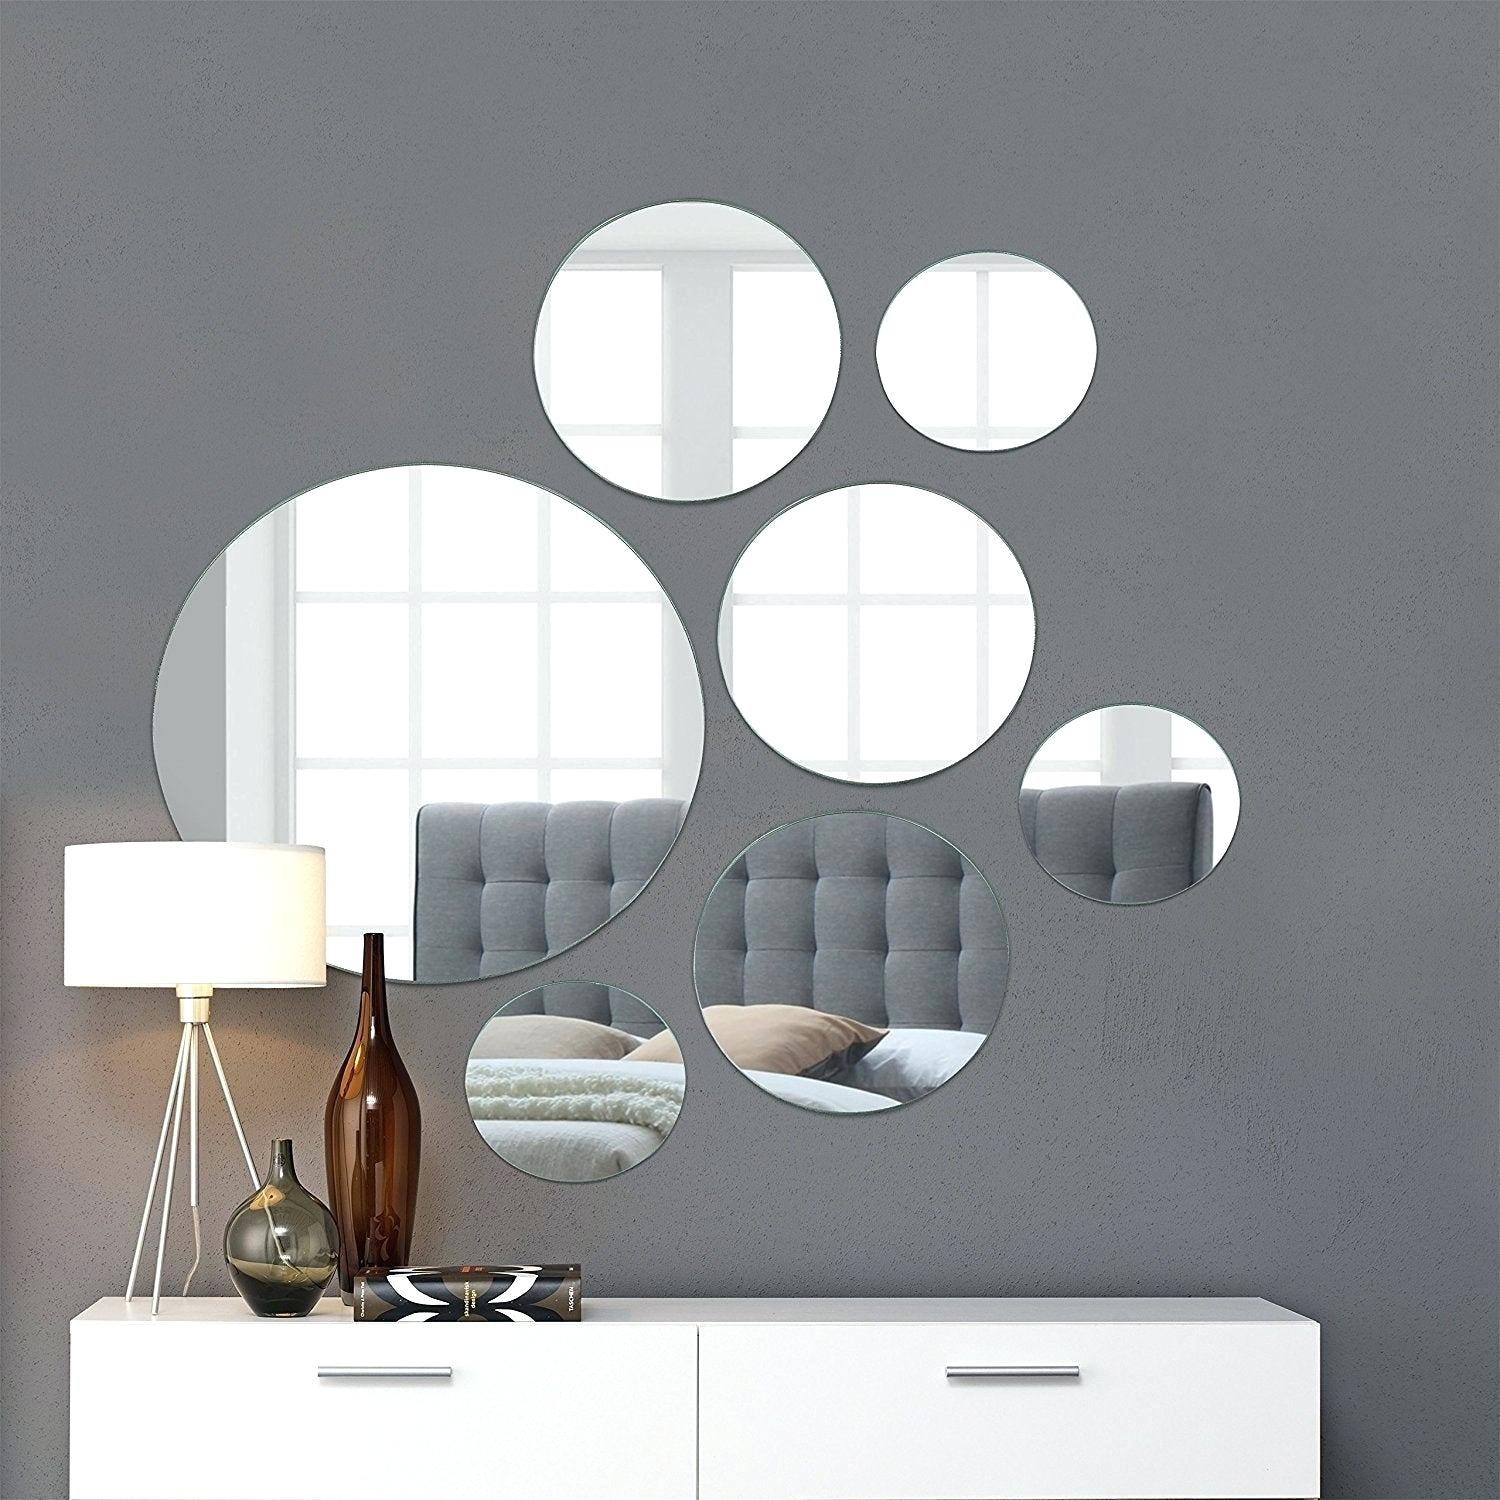 Wall Mirror Set With 4 Piece Metal Wall Decor Sets (View 21 of 30)